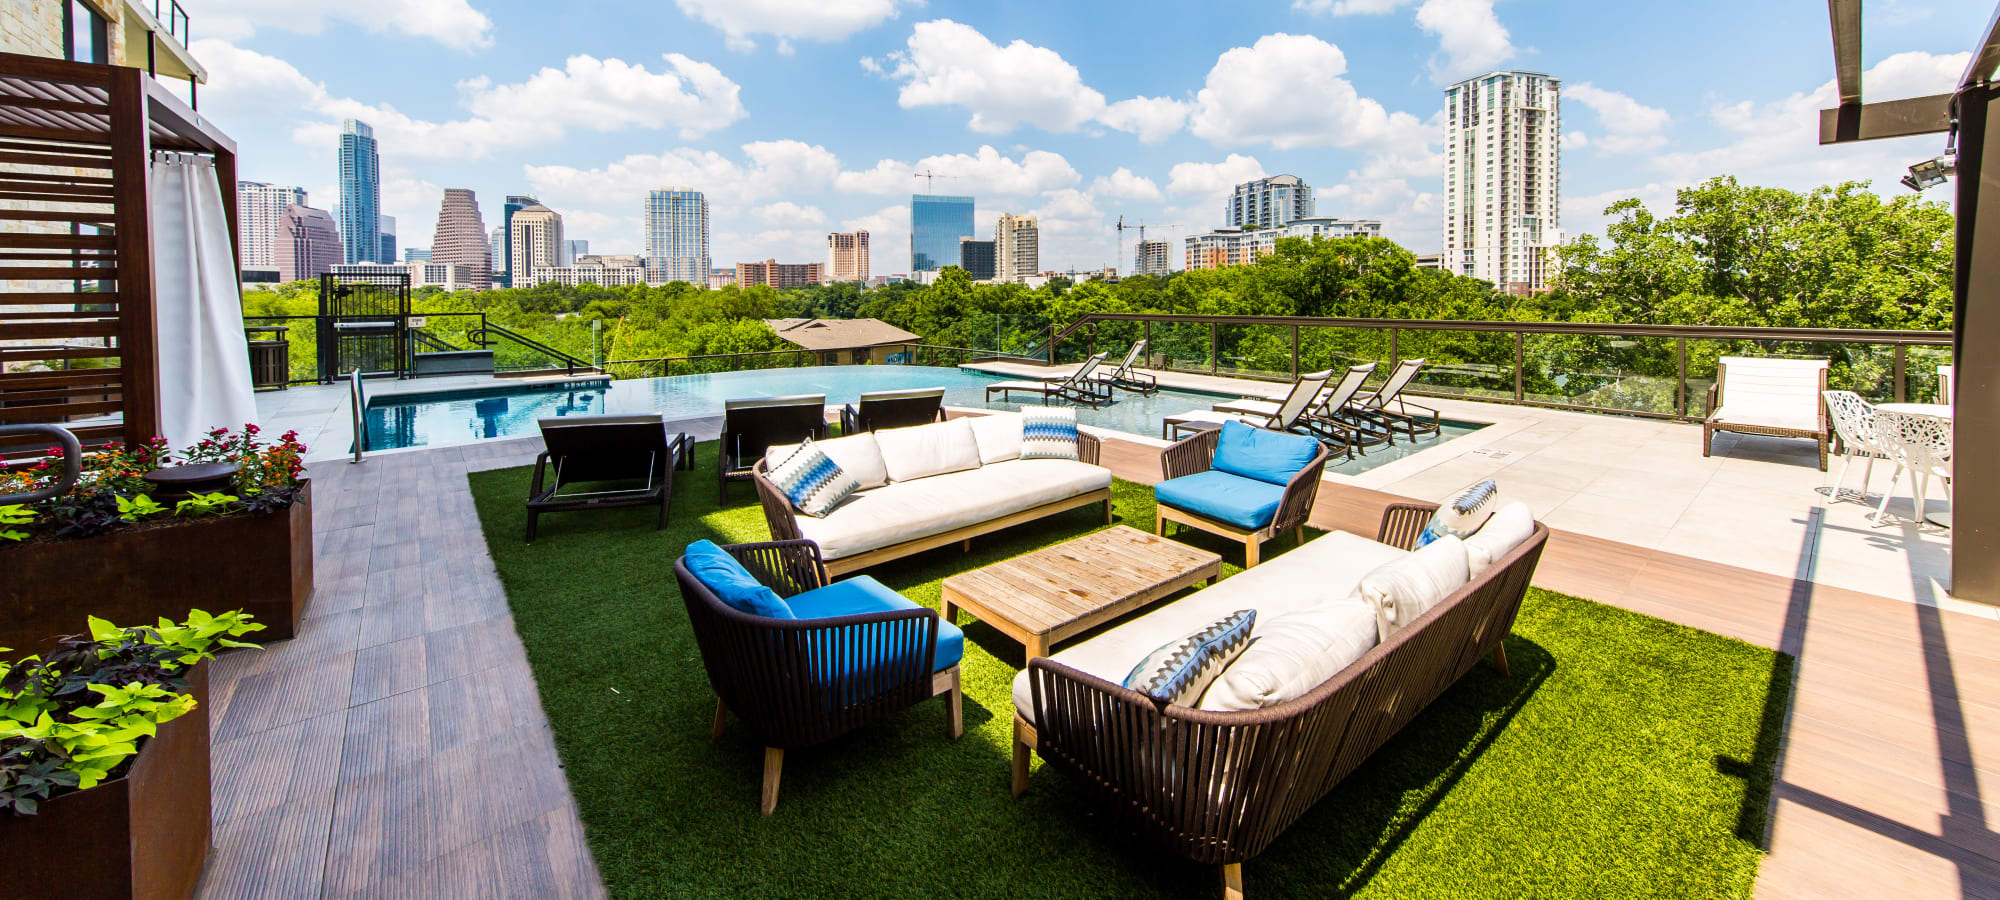 Apartments at Water Marq in Austin, Texas